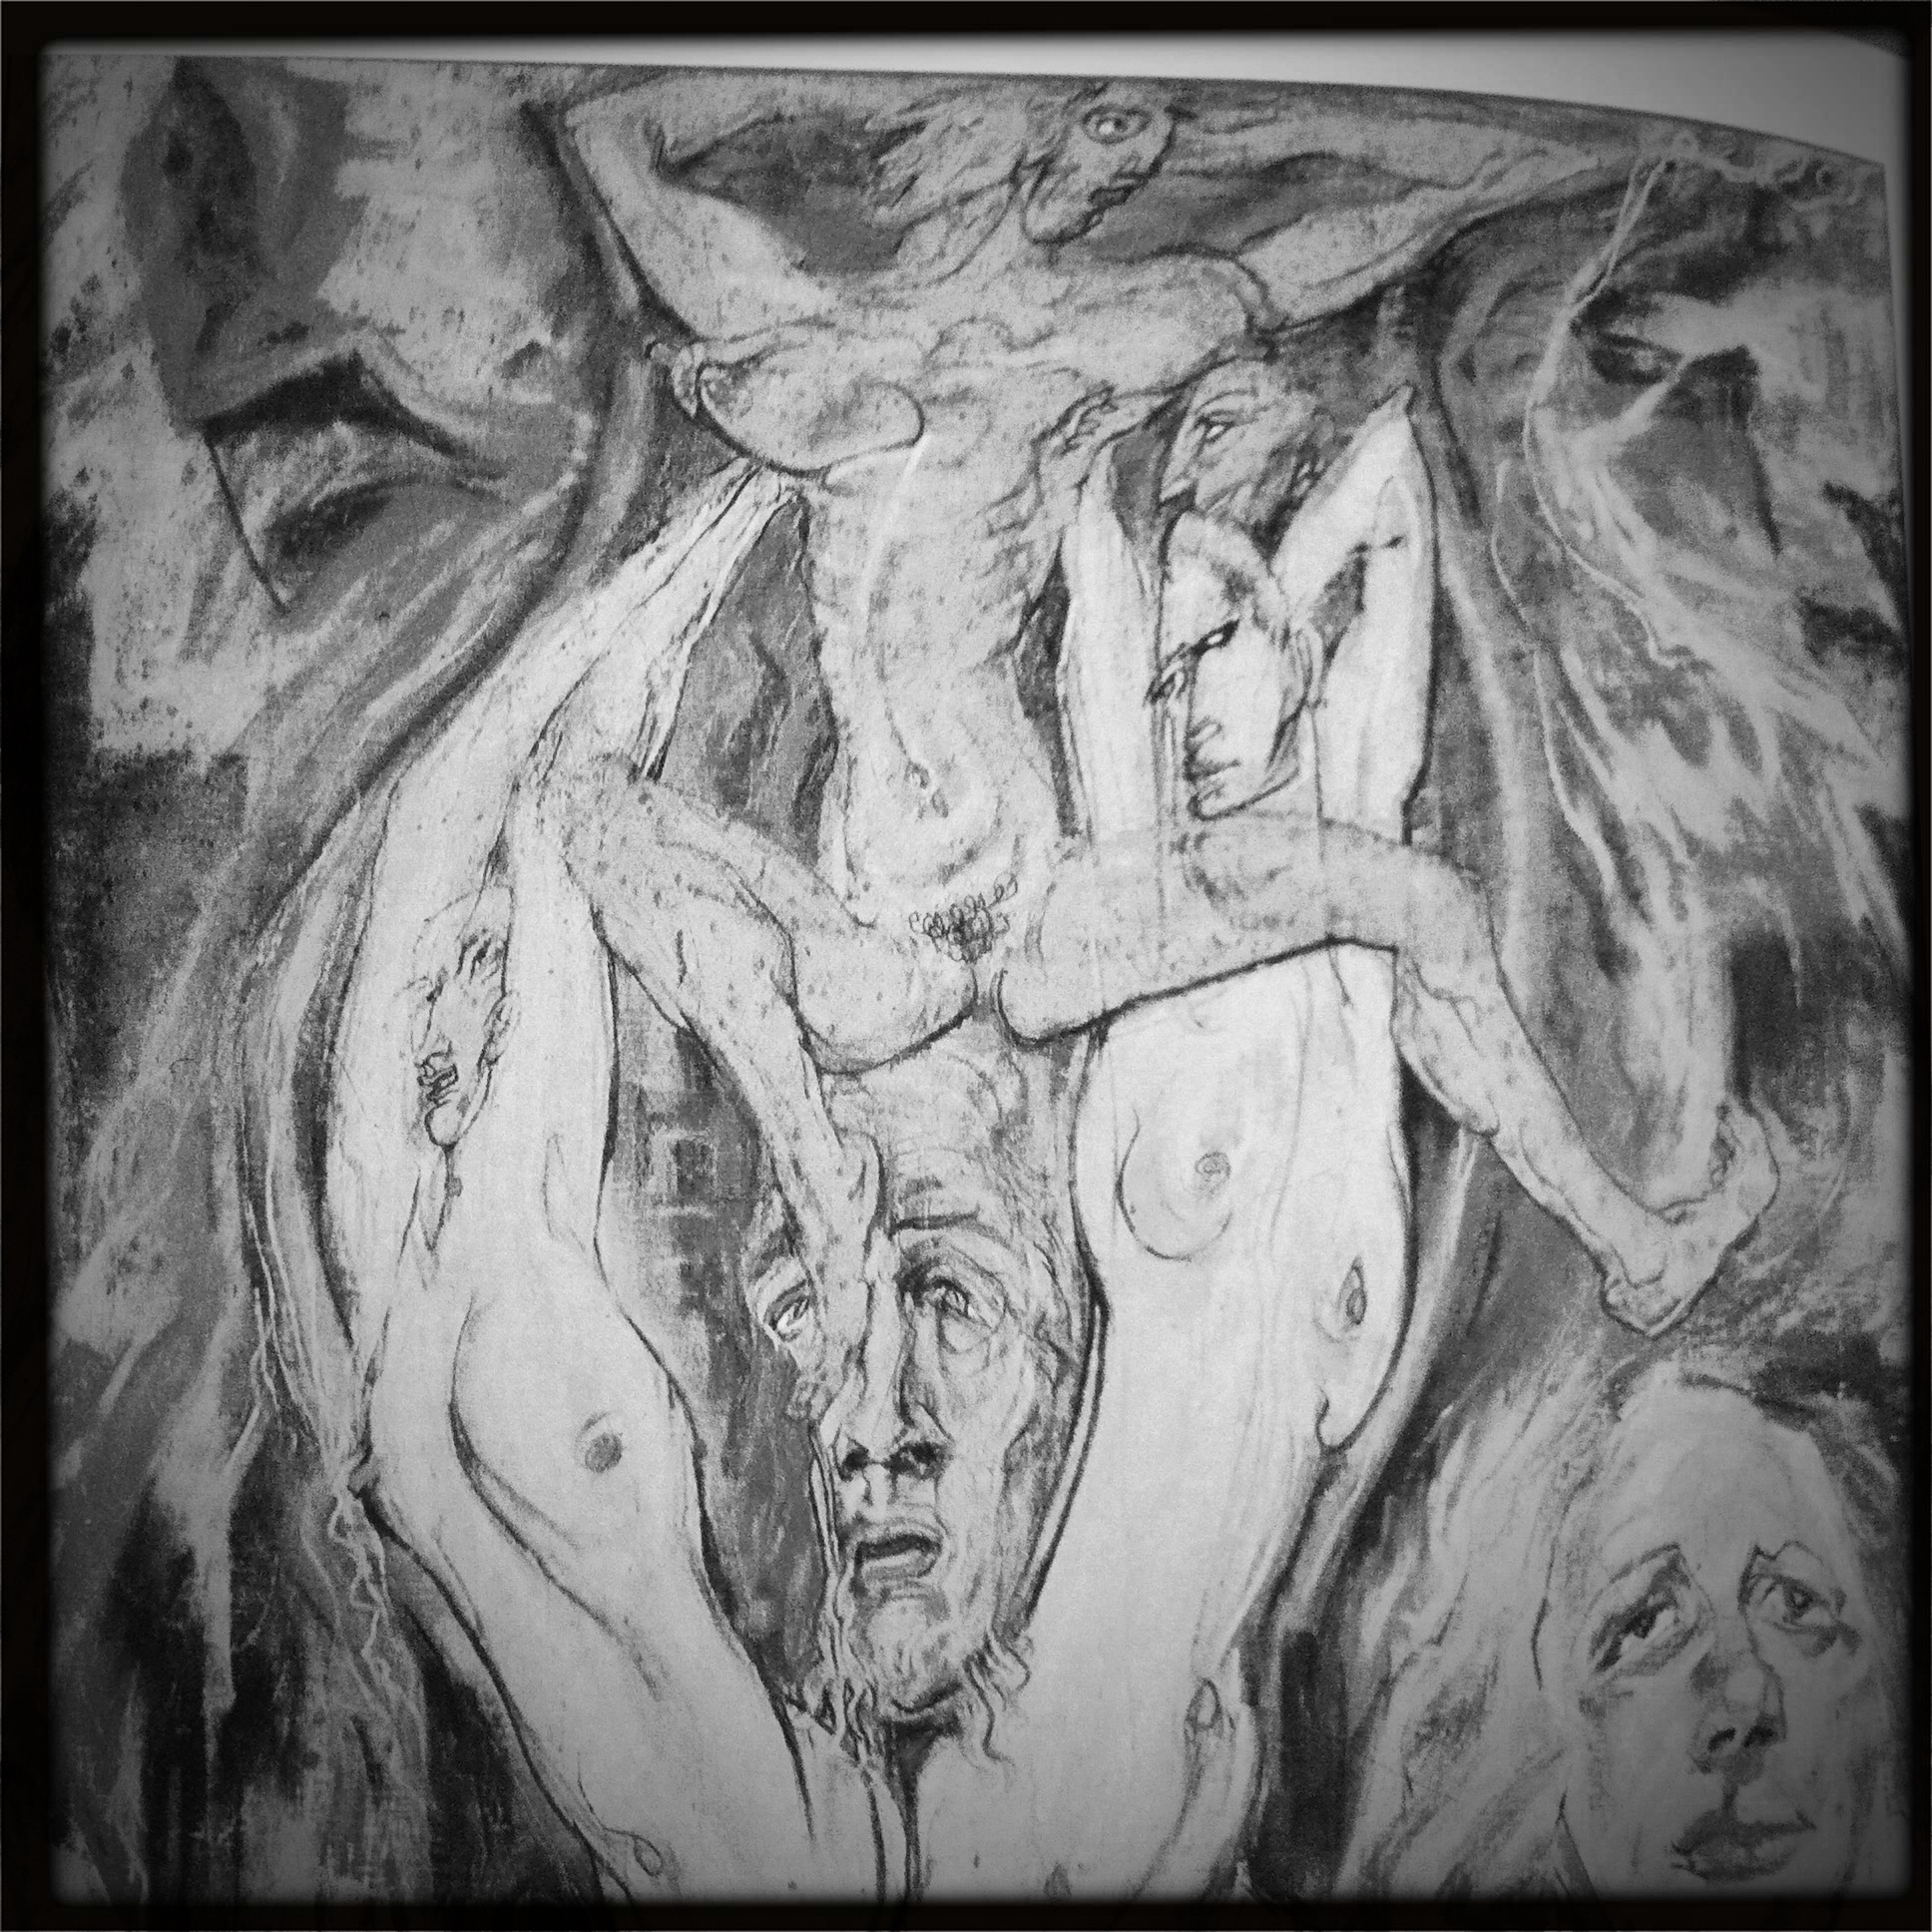 """An example of 'unformed magic' - excerpt of A.O. Spare's painting """"Flame, Fugue, Flesh"""" (1954)"""